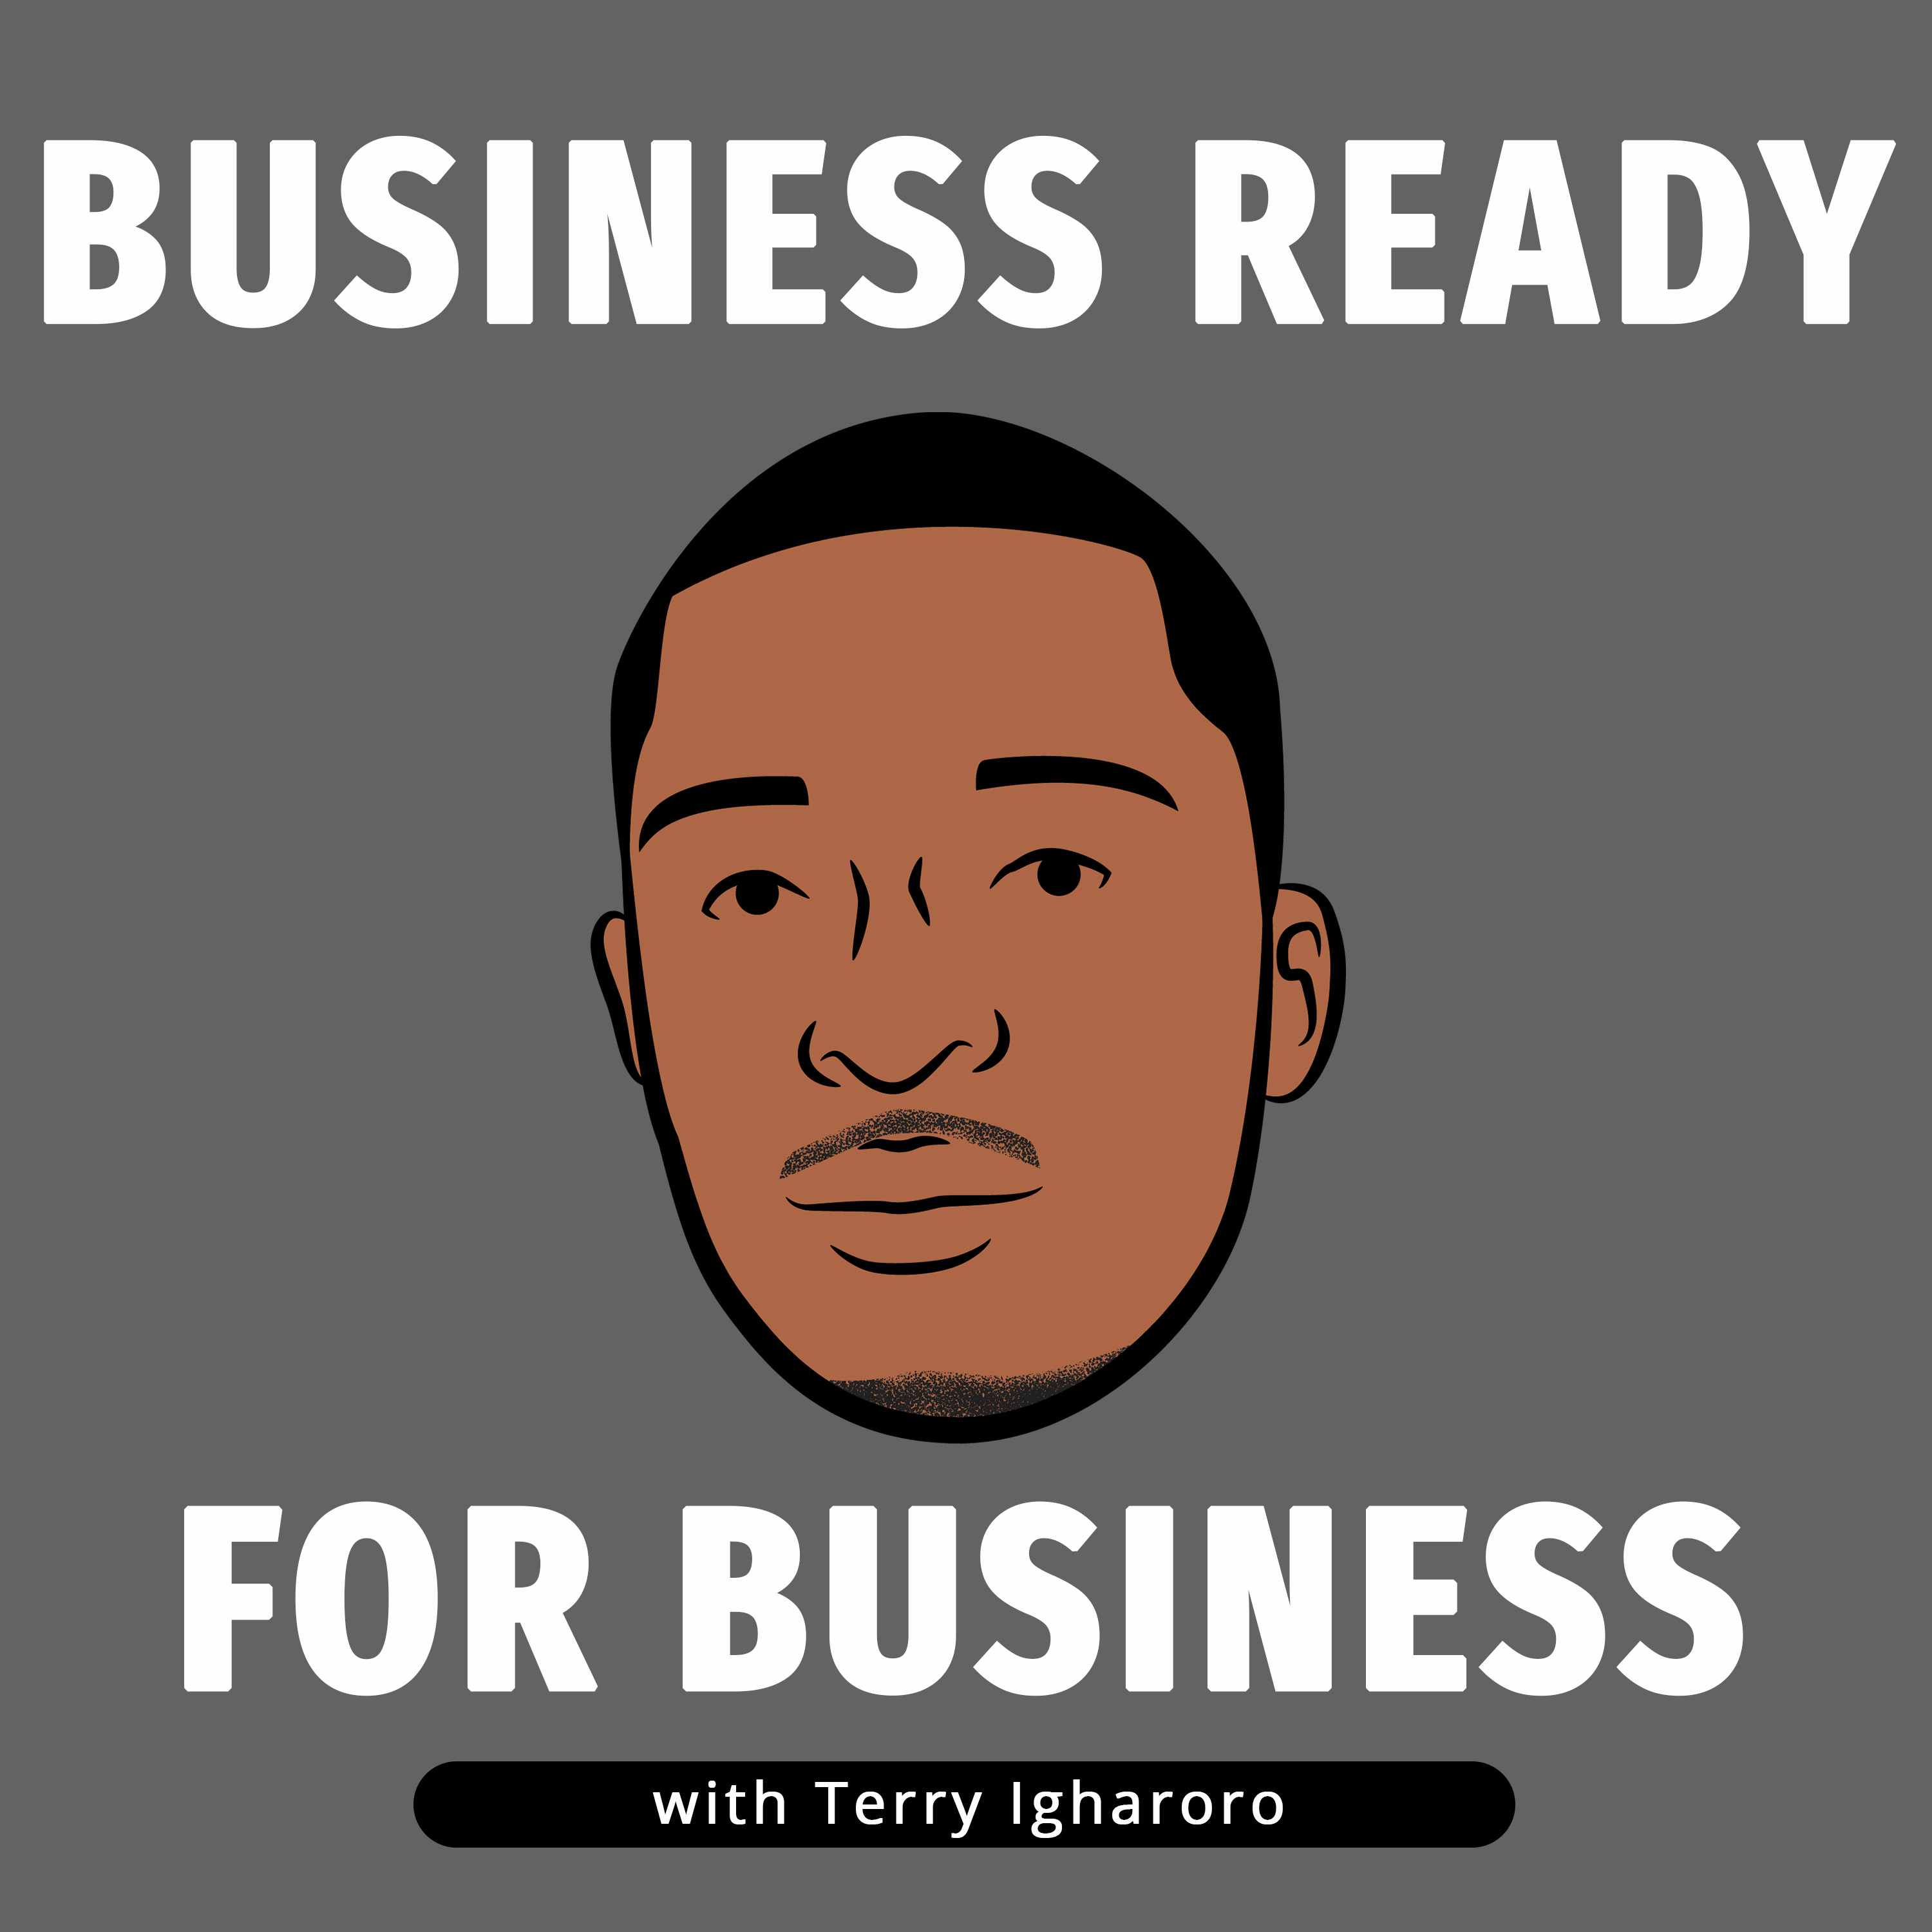 Business Ready For Business